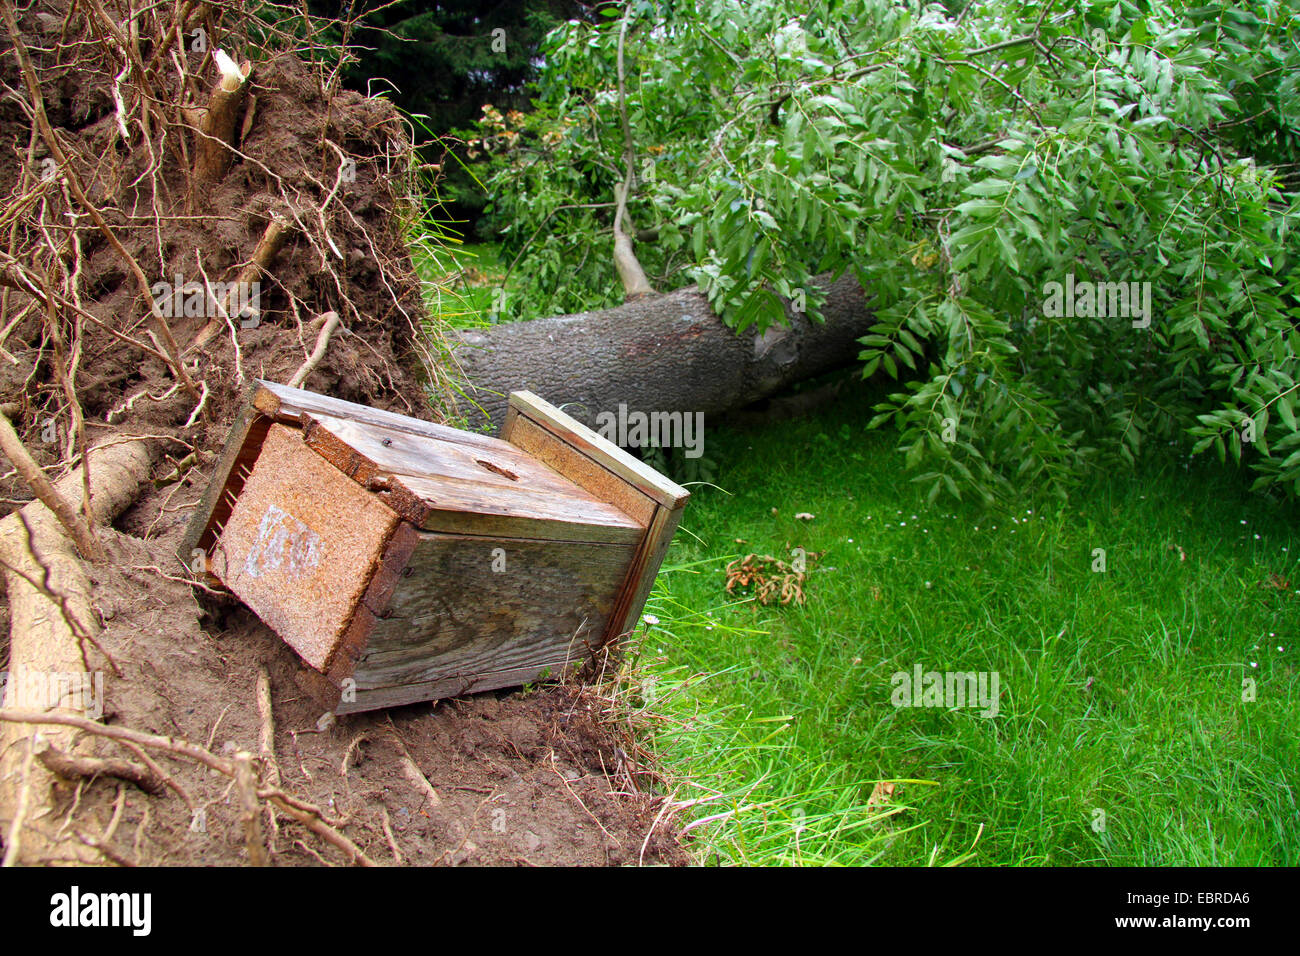 disrooted ash with nest box, storm front Ela at 2014-06-09, Germany, North Rhine-Westphalia, Ruhr Area, Essen - Stock Image